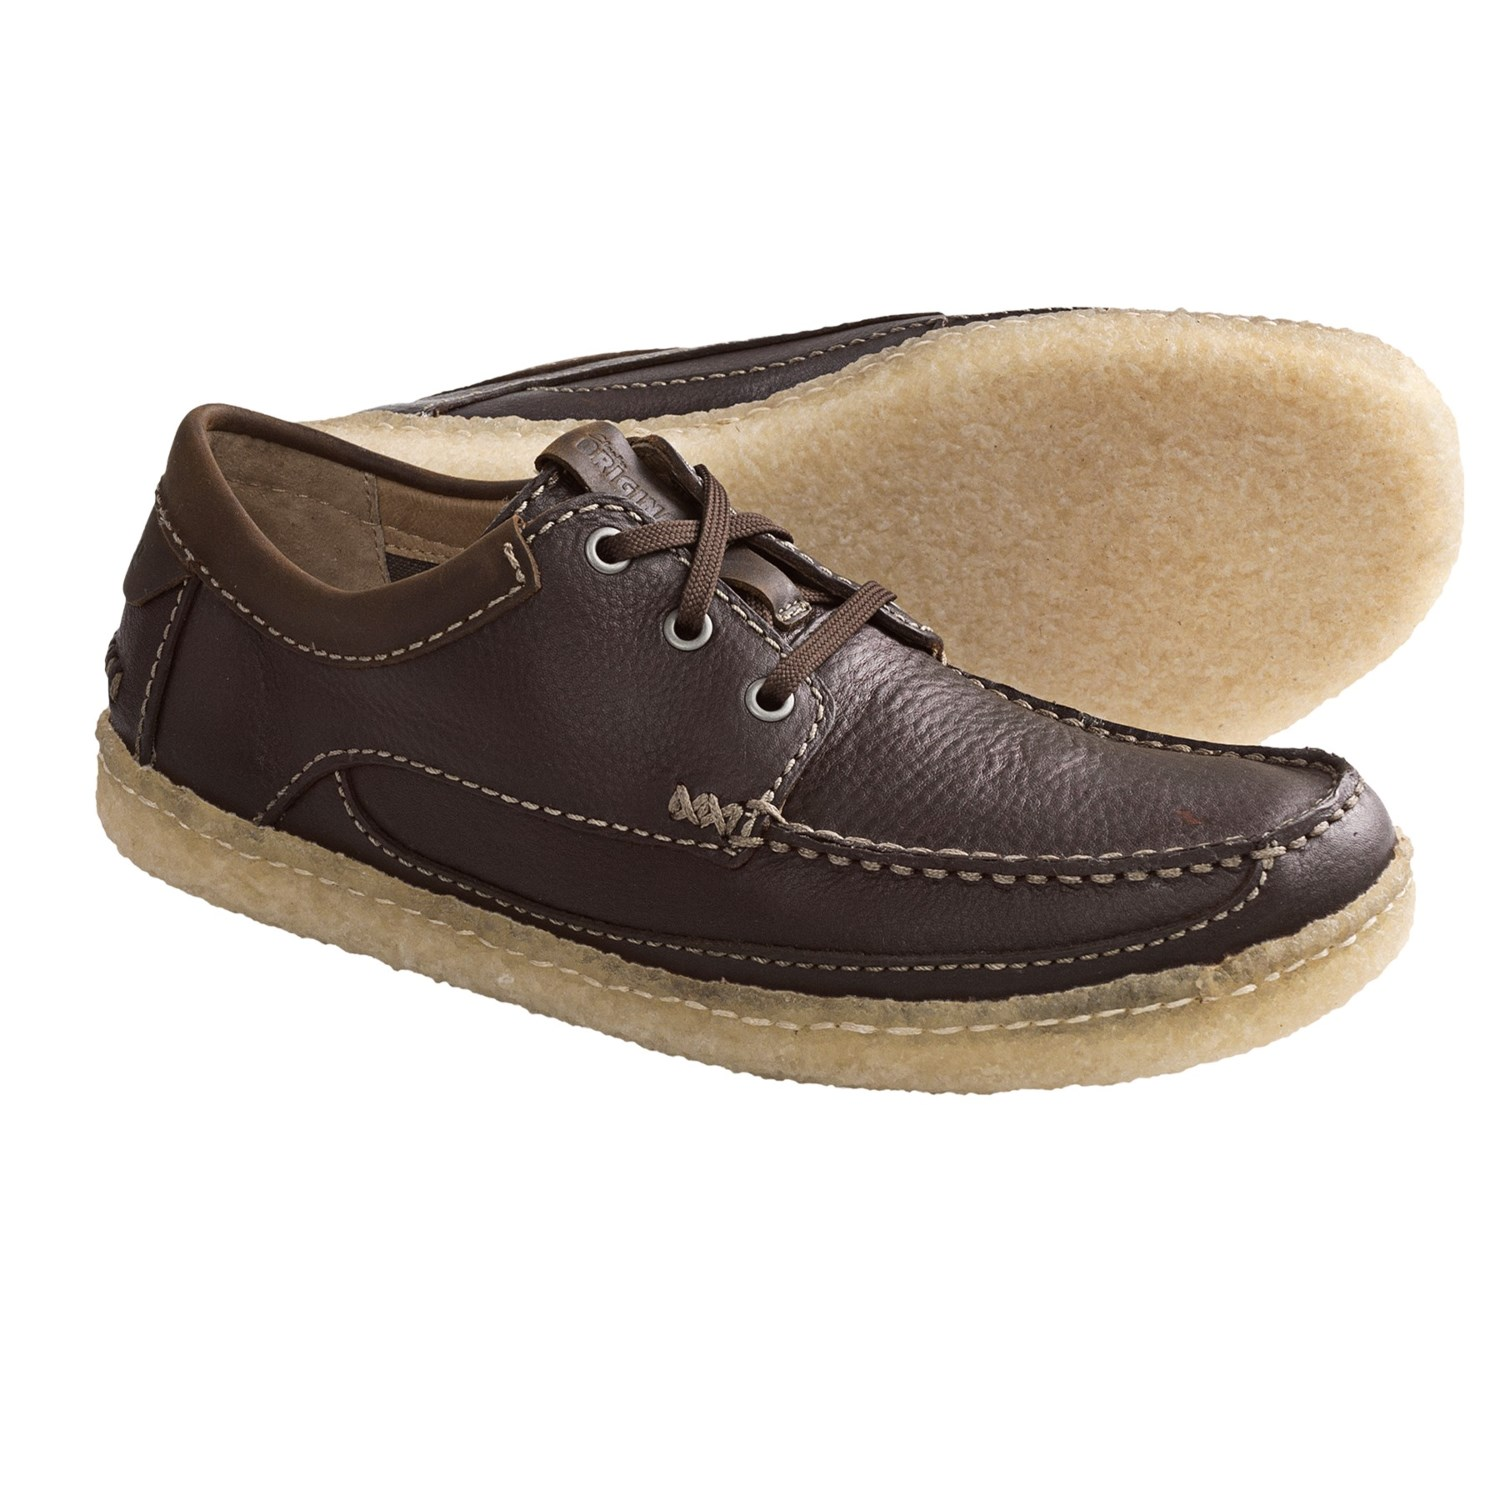 clarks of suomi c shoes leather for